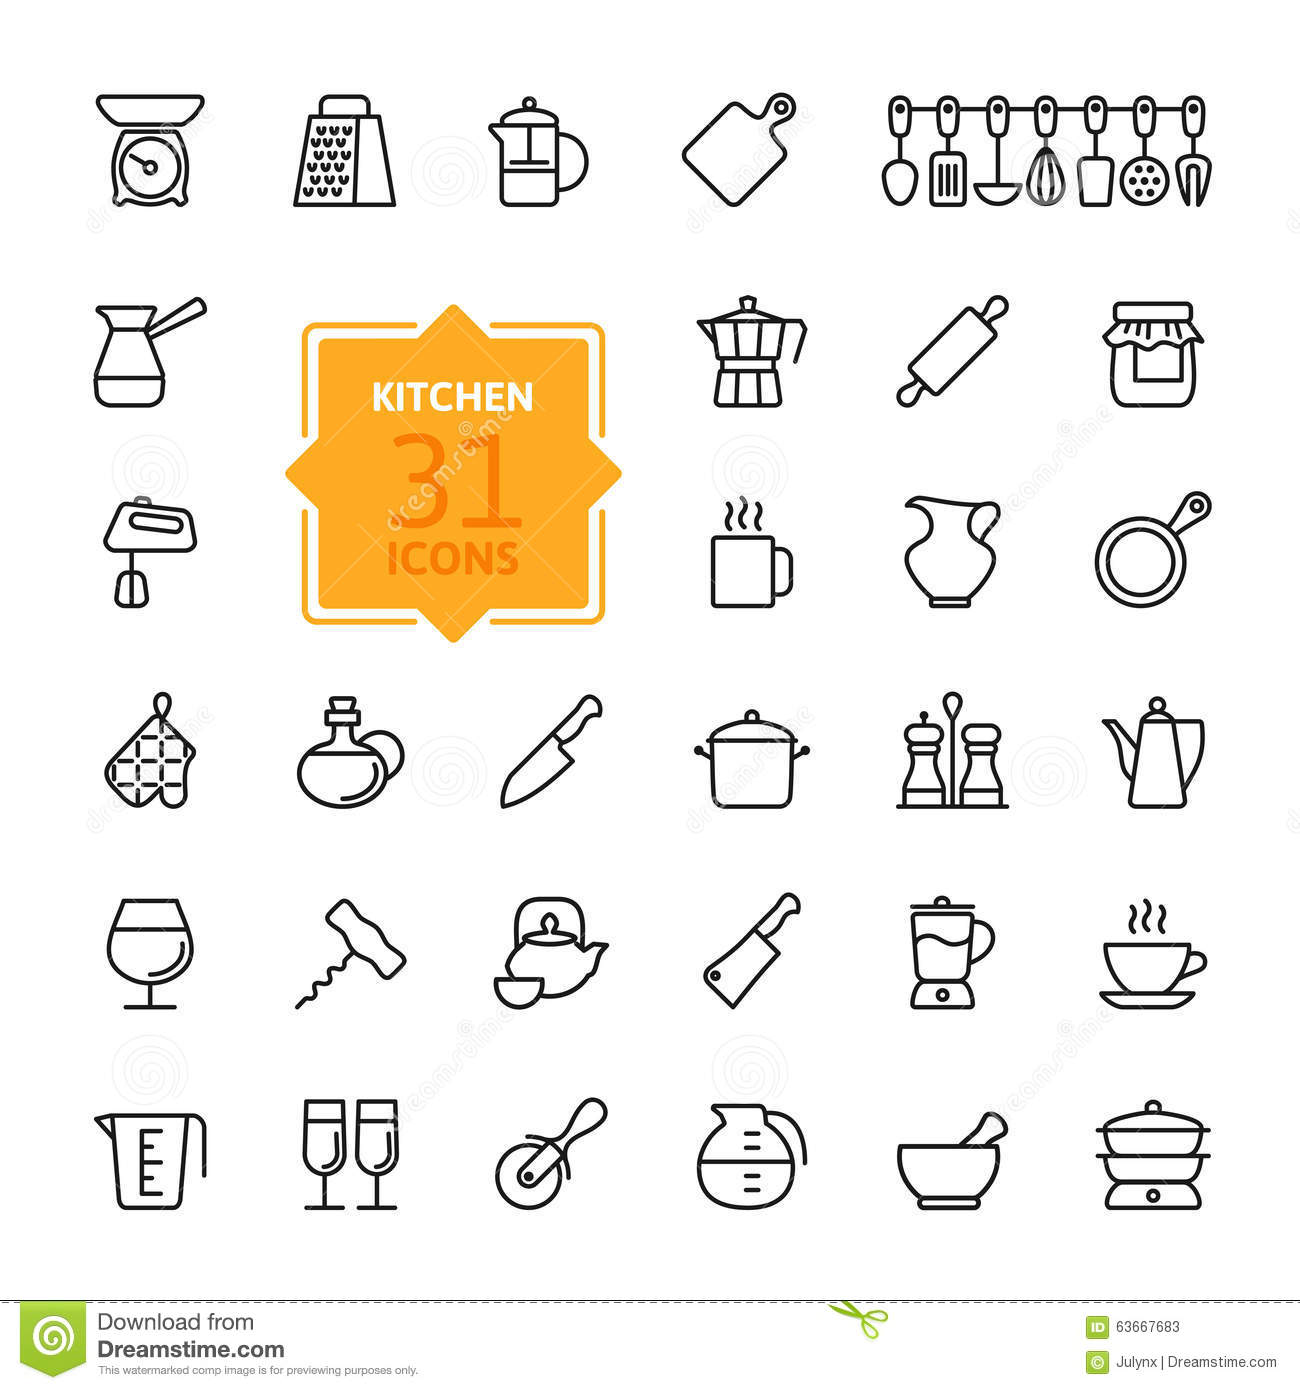 Kitchen Tools And Utensils outline icon collection - cooking tools and utensils stock vector